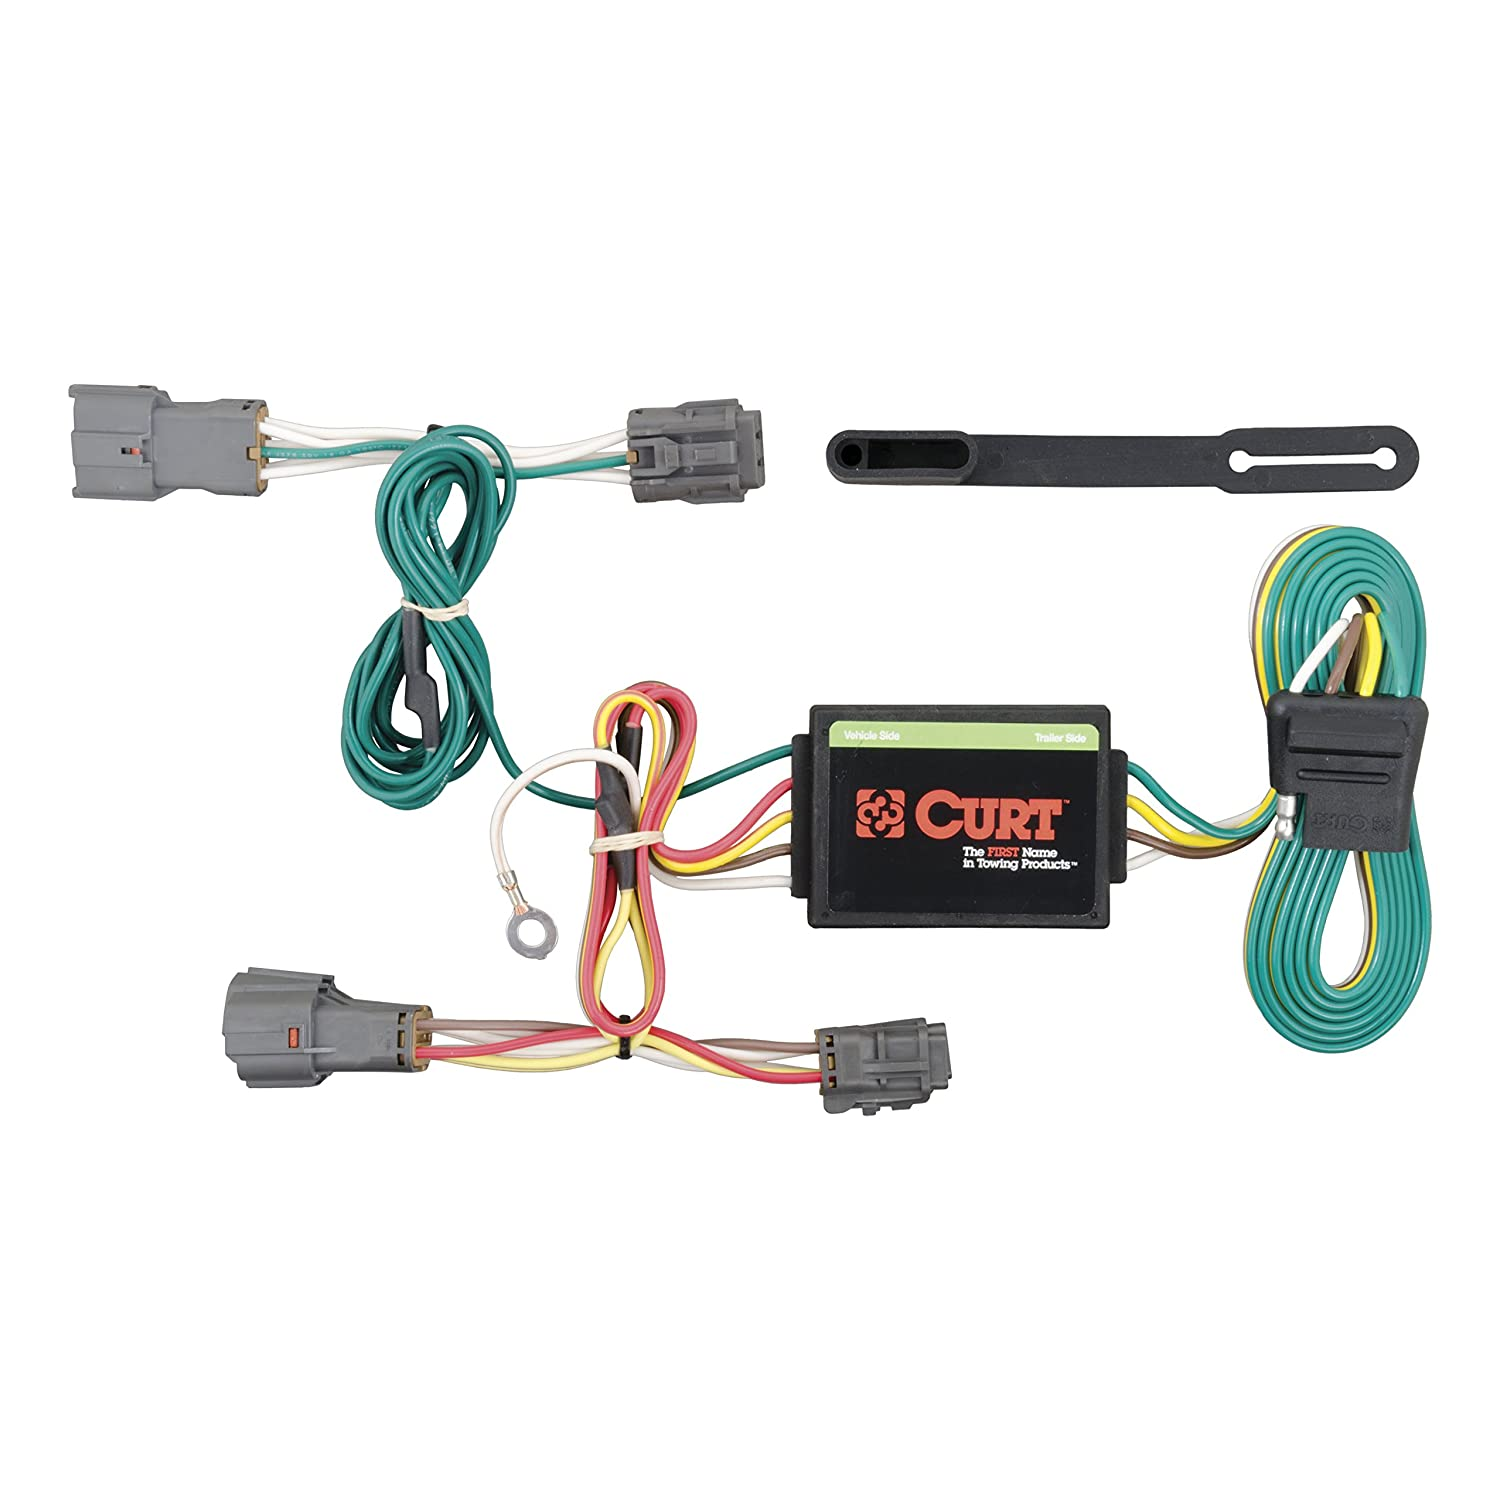 Amazon.com: CURT Class 1 Trailer Hitch Bundle with Wiring for 2015-2016 Kia  Soul - 11419 & 56222: Automotive